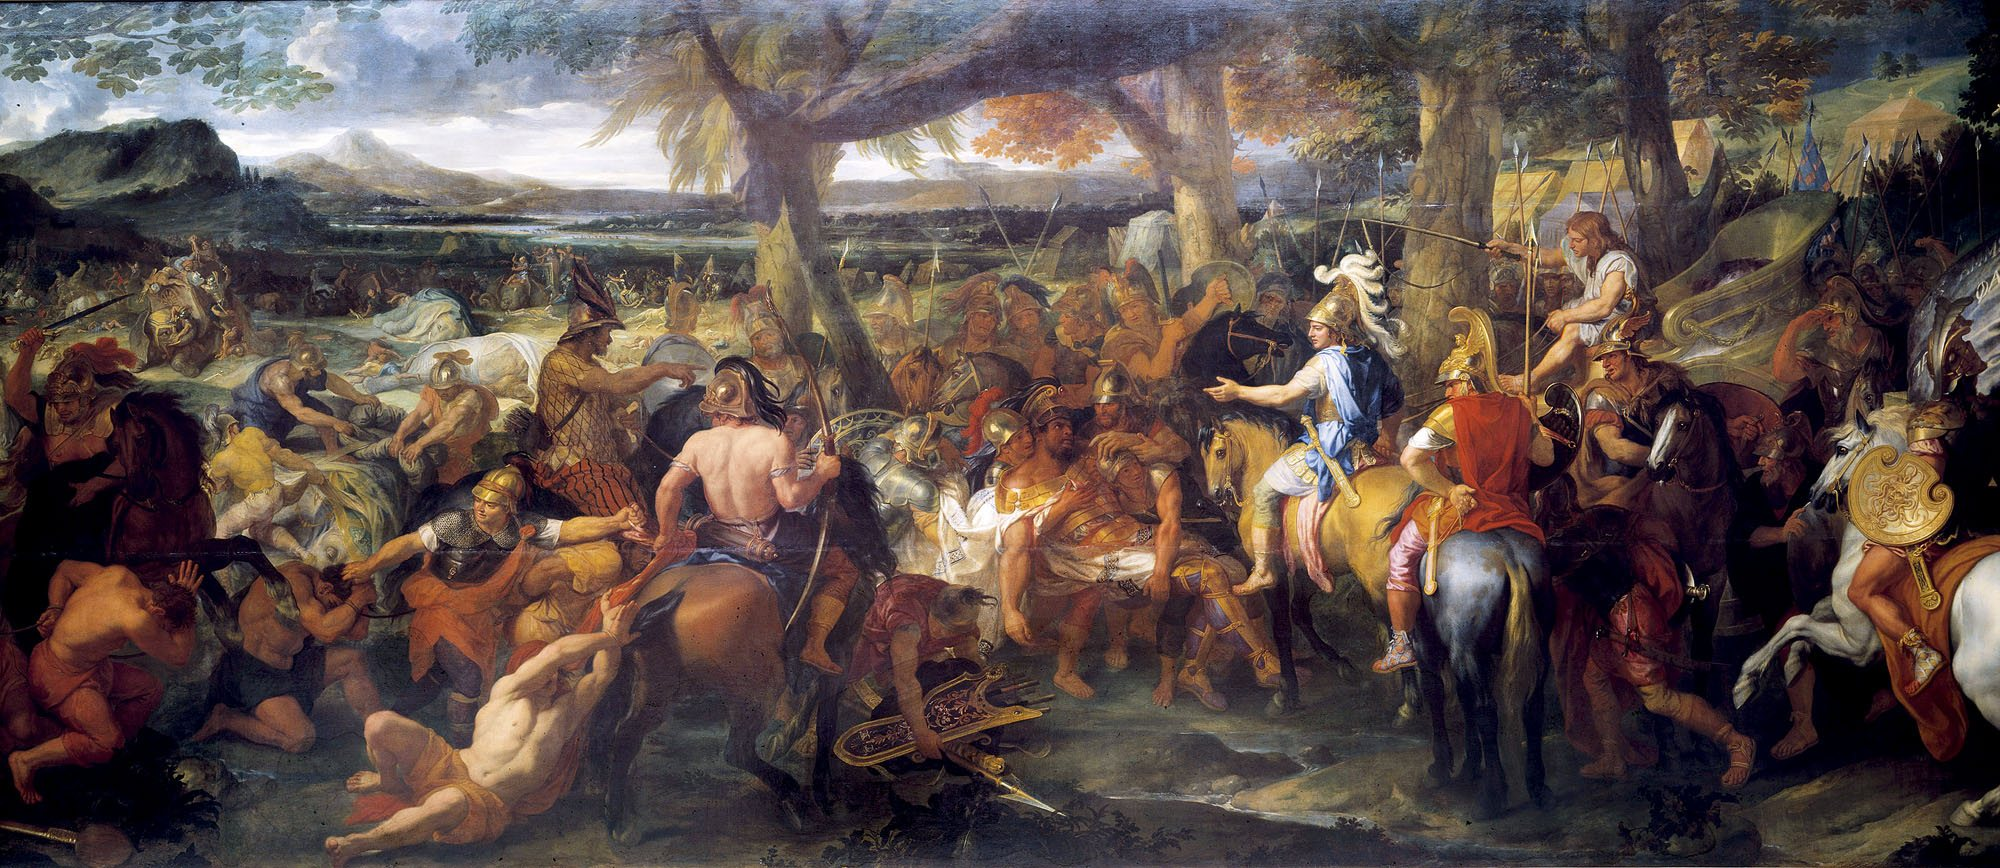 alexander the great hollywood vs history The persians hoped to win the battle of the granicus by by john r mixter 6/12/2006 • military history of the four great battles alexander fought in.